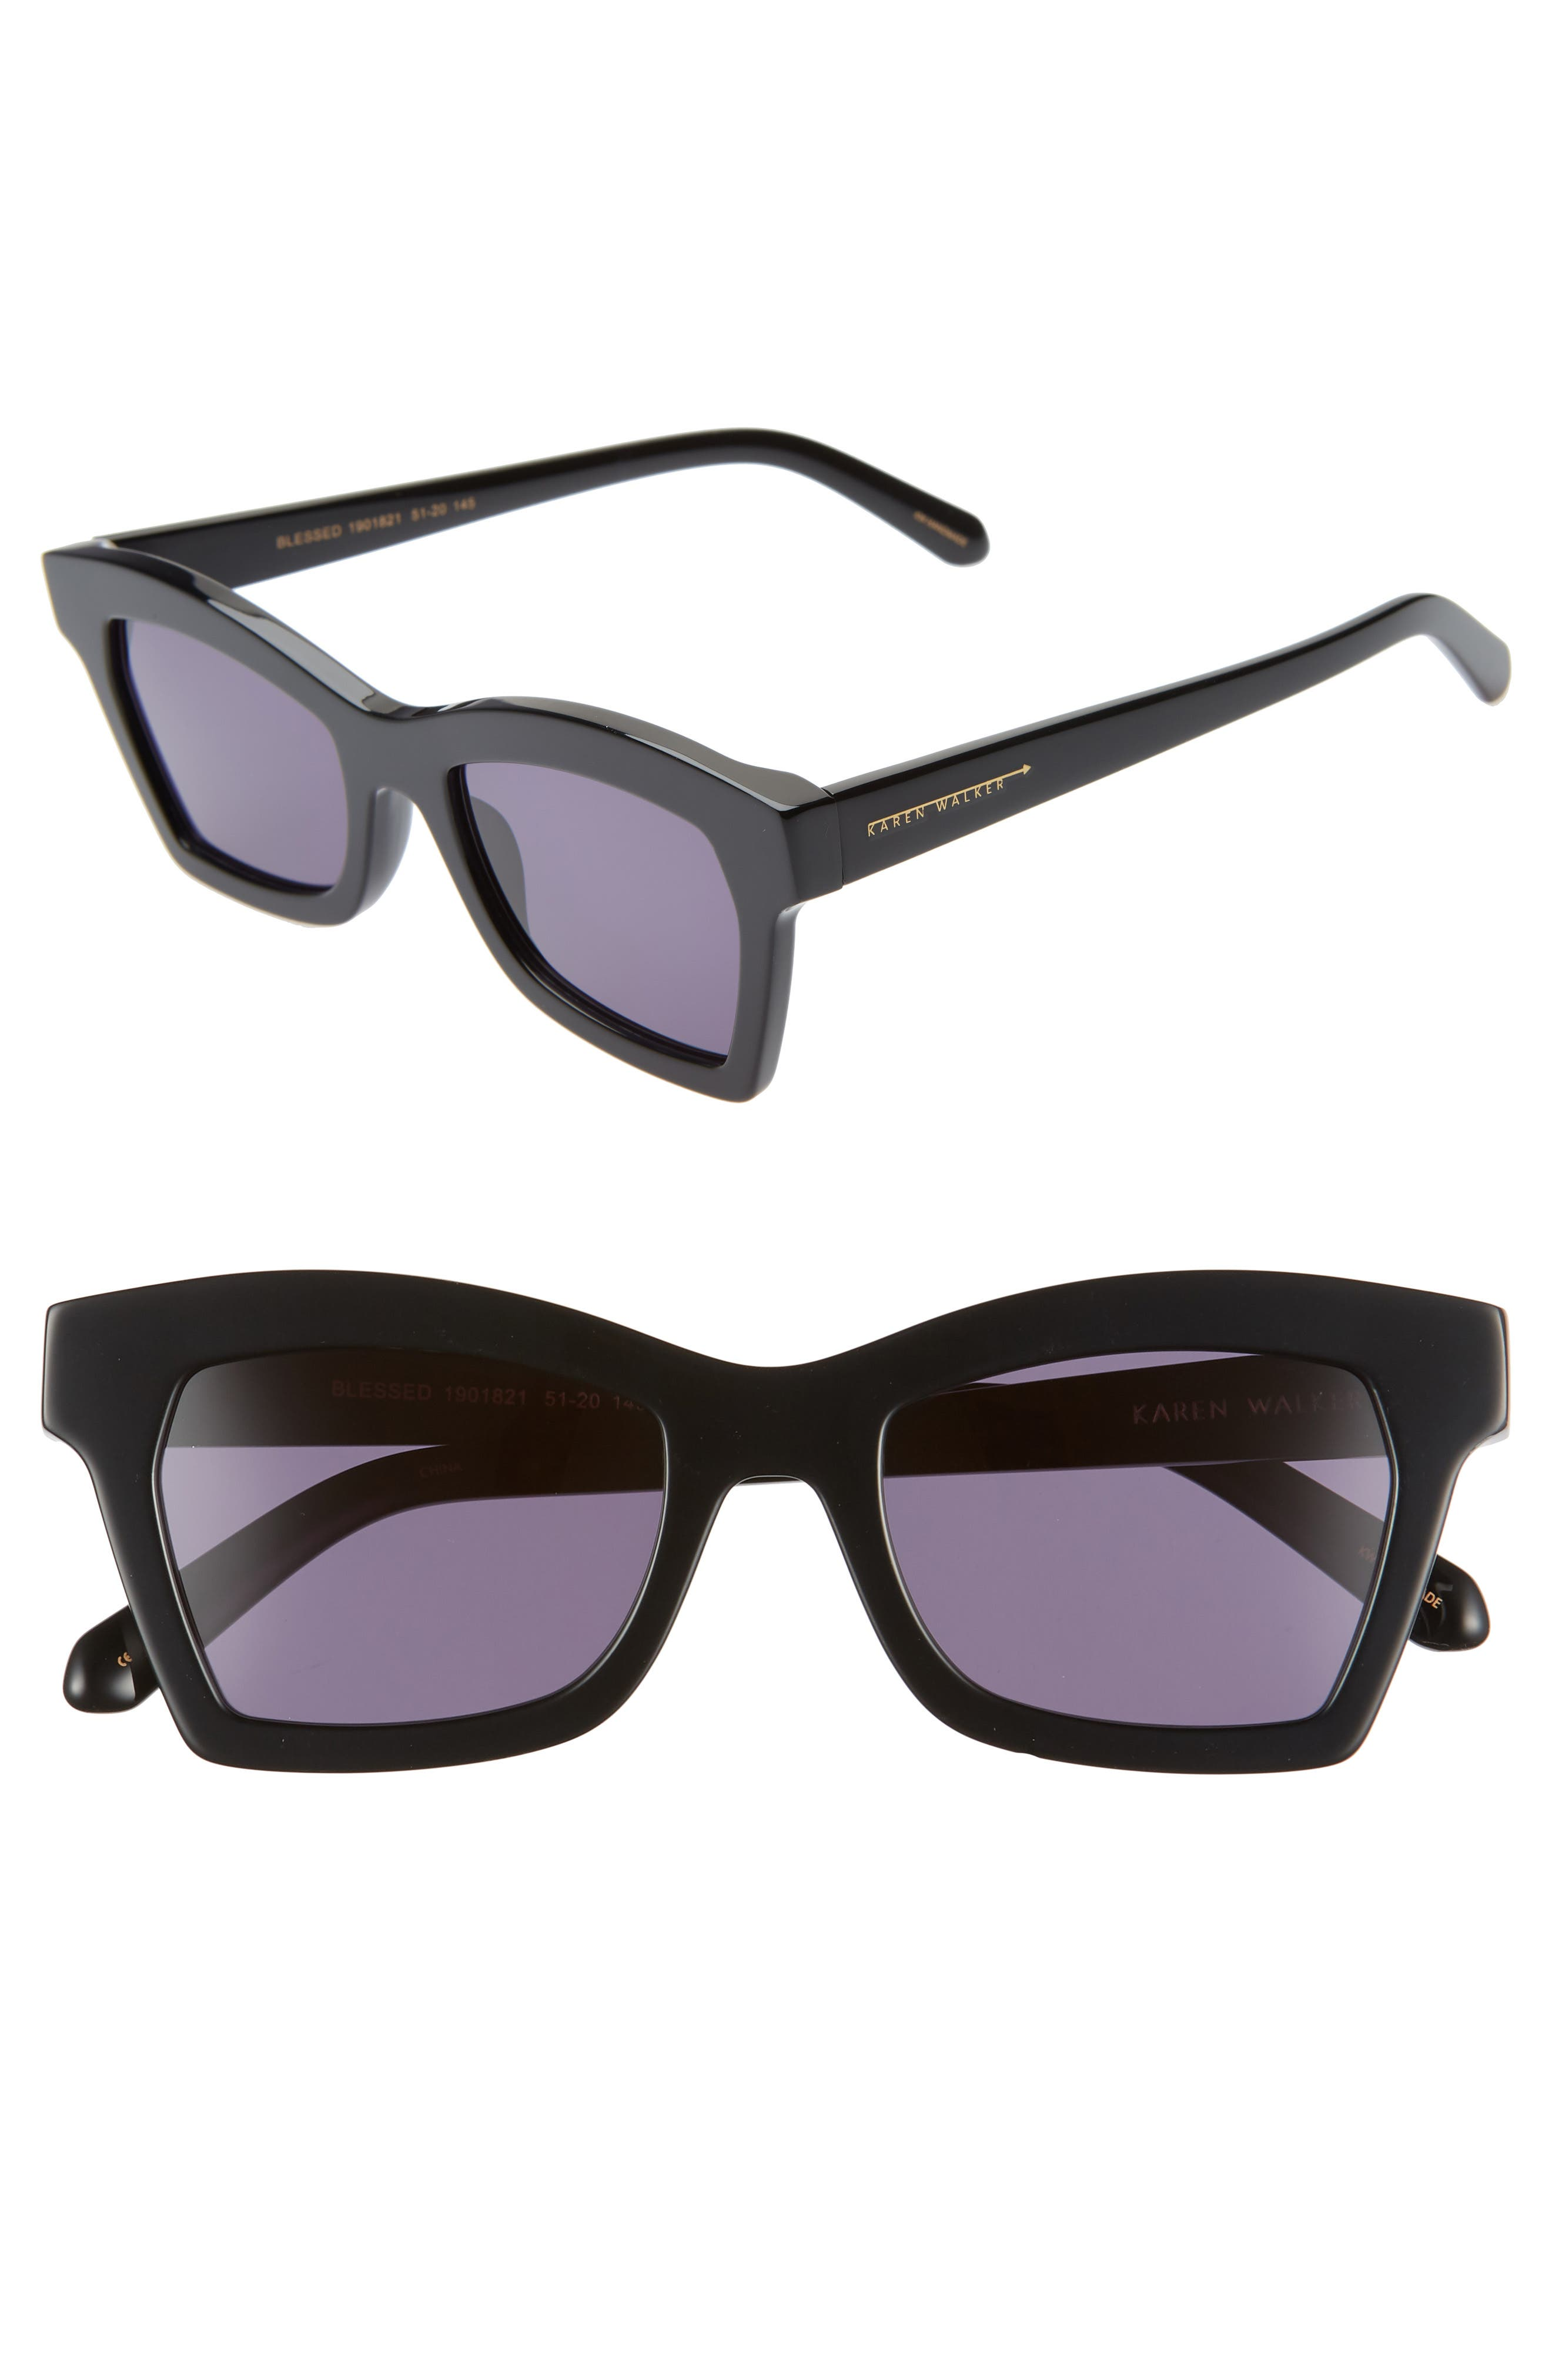 Karen Walker BLESSED 51MM SQUARE SUNGLASSES - BLACK/ SMOKE